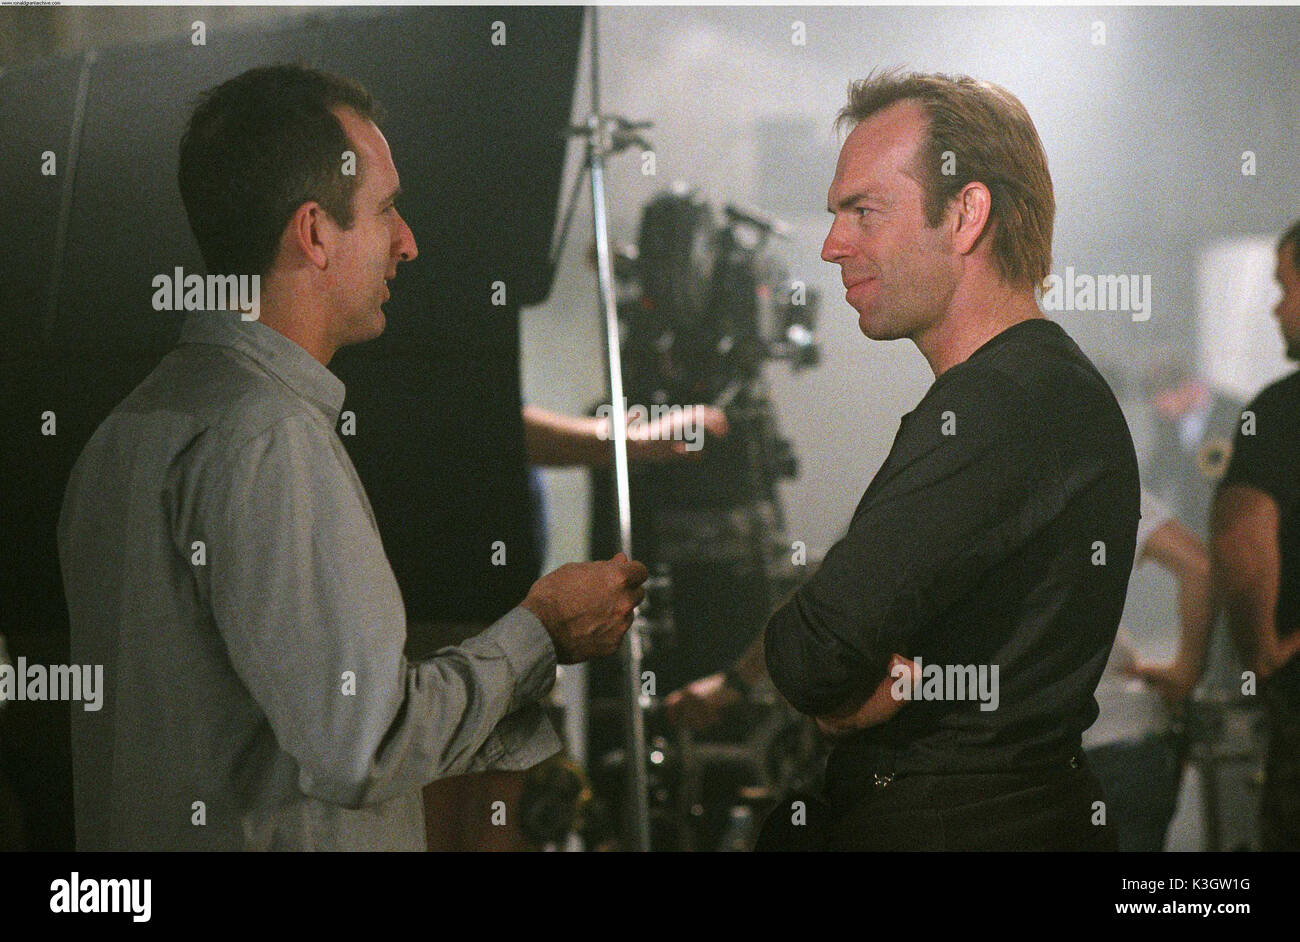 V For Vendetta Director James Mcteigue And Hugo Weaving Date Stock Photo Alamy